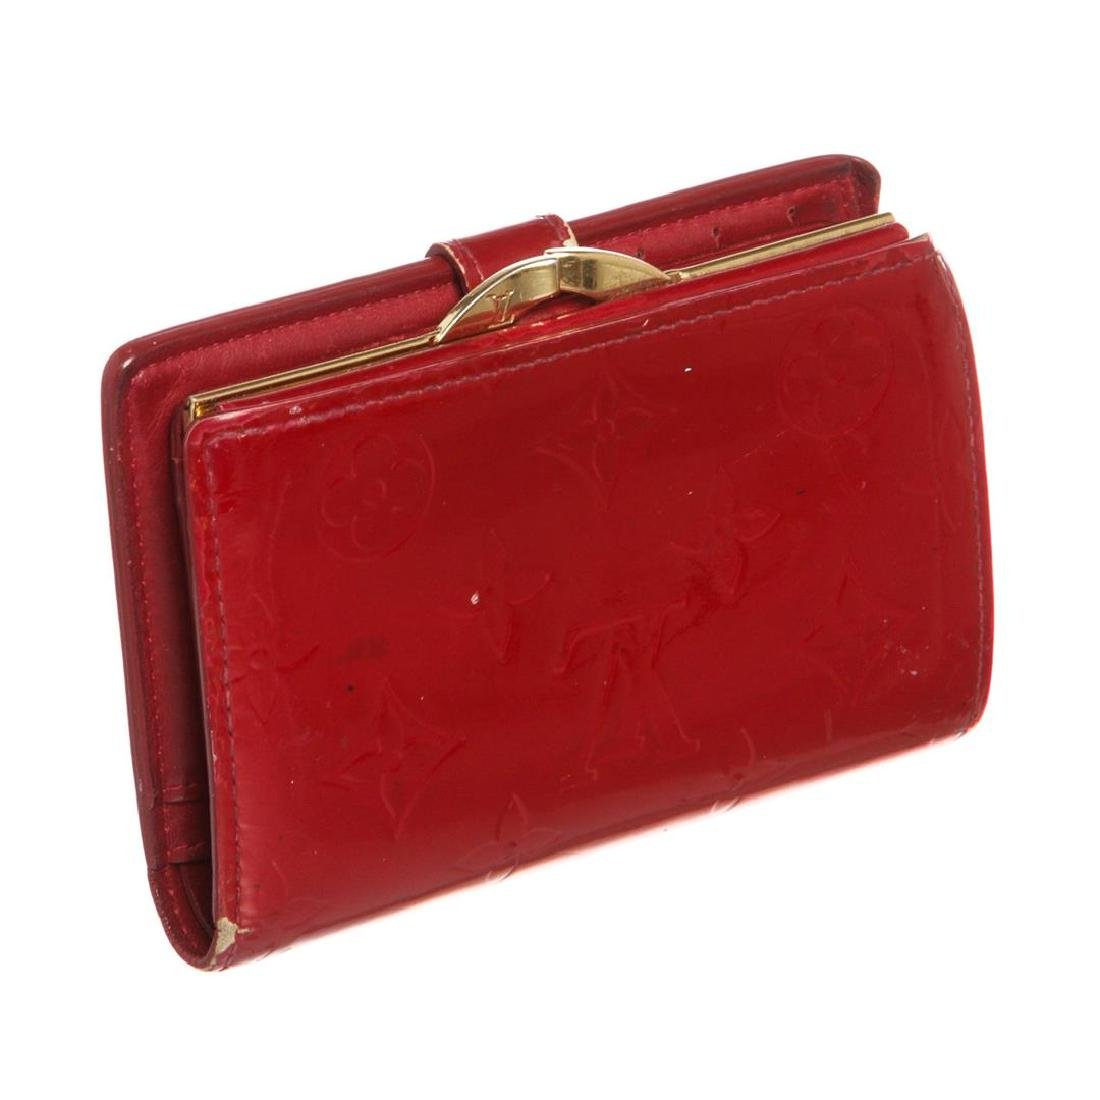 Louis Vuitton Red Vernis Monogram French Wallet - 3